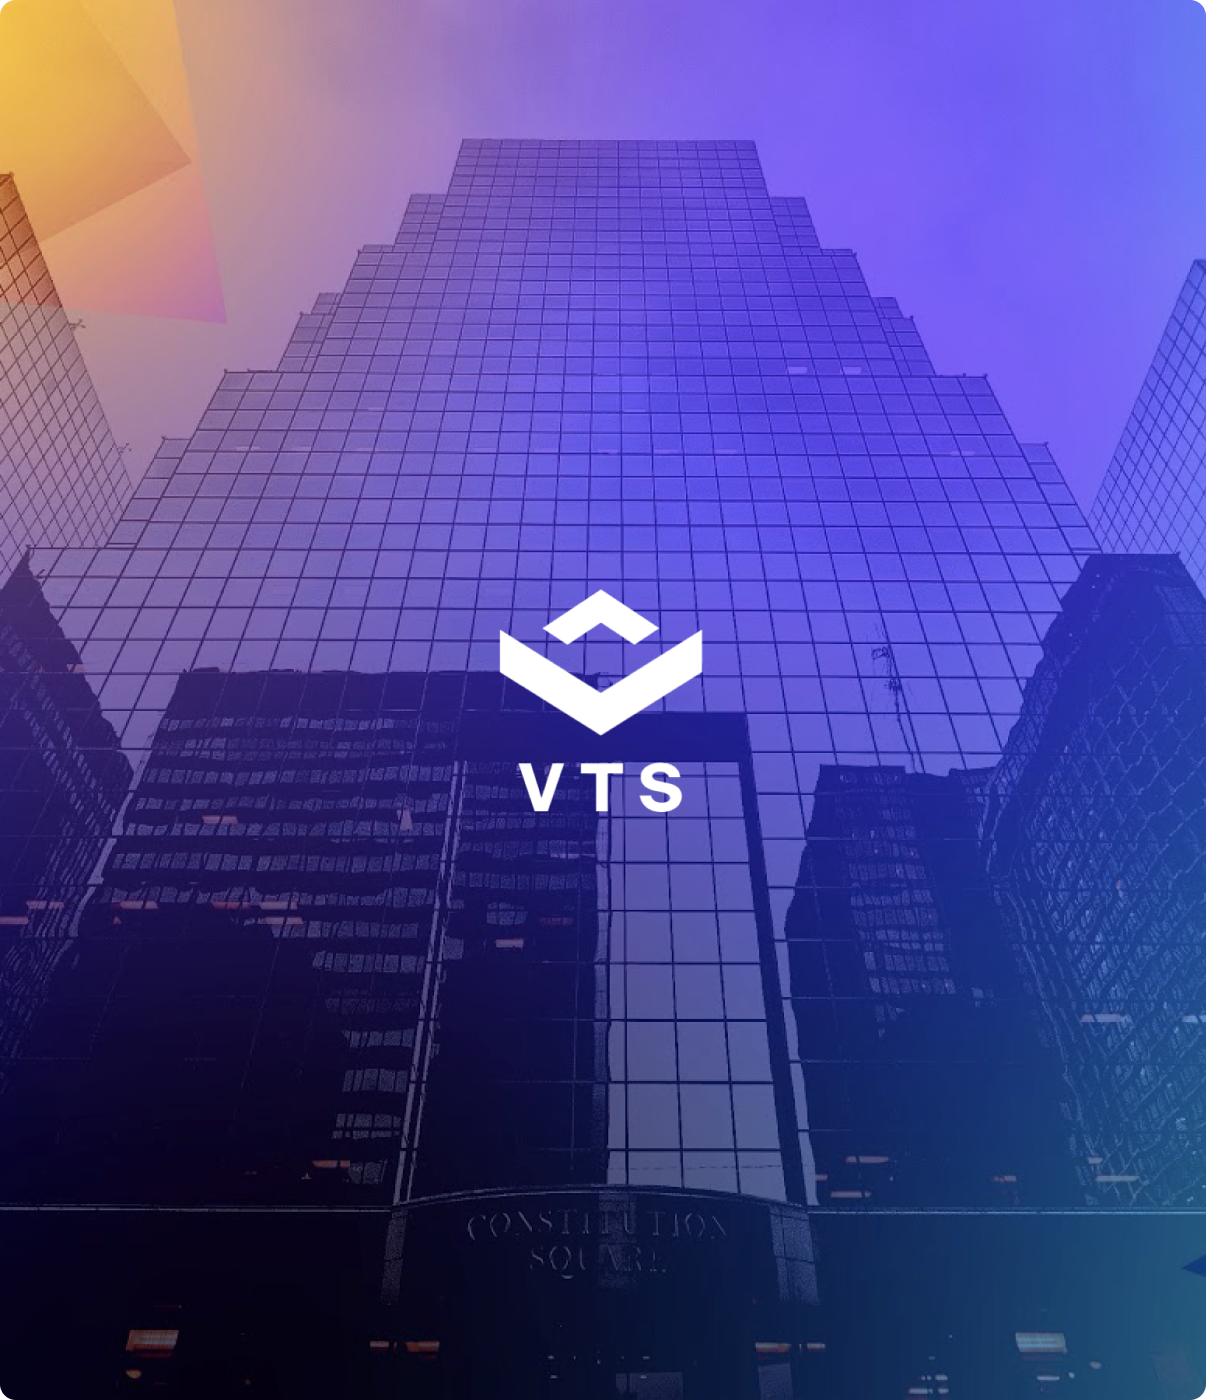 VTS - Deal Connections